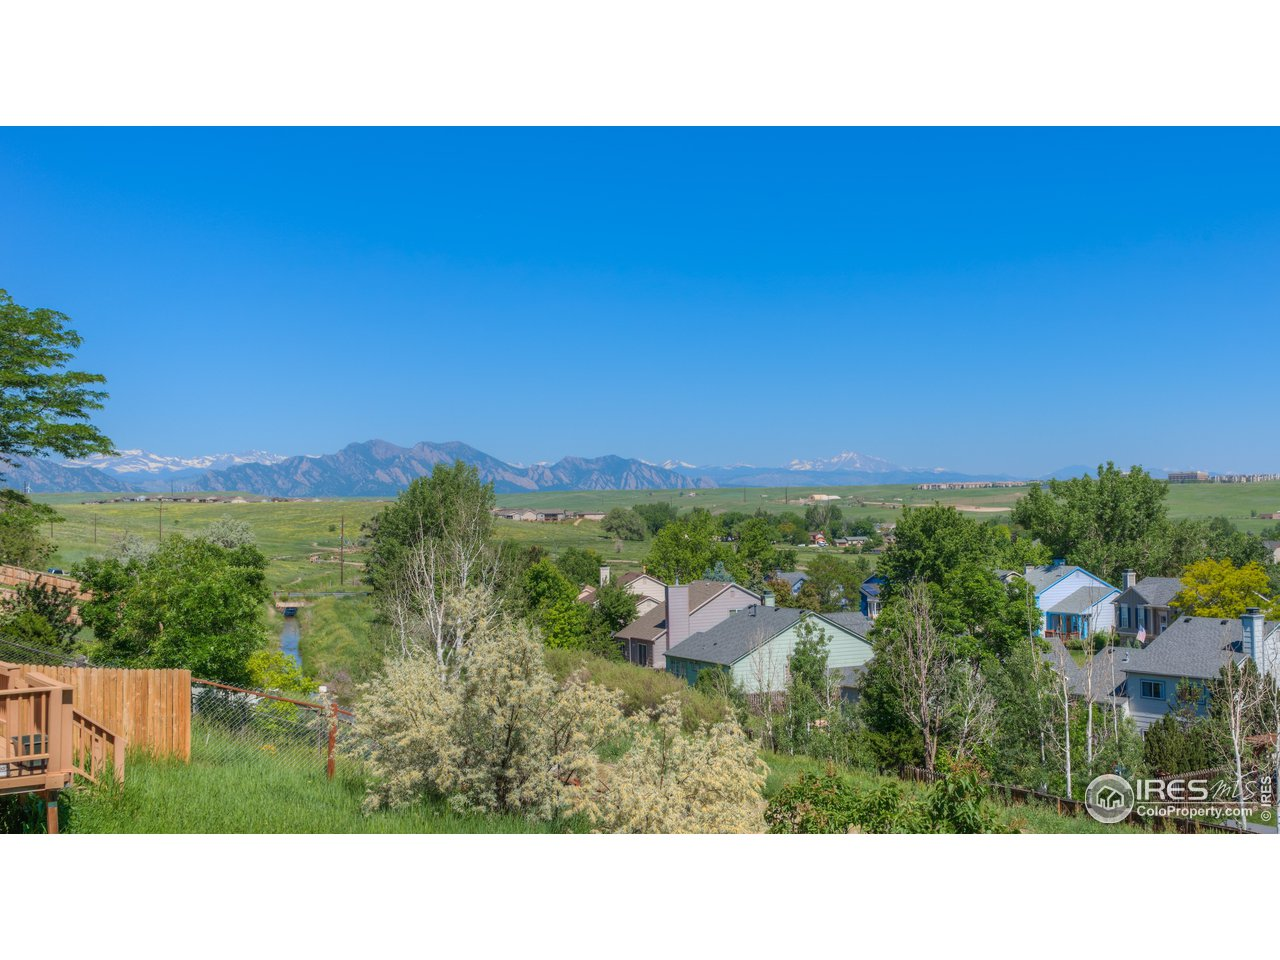 Across back yard- foothills and continental divide views on a clear day in spring